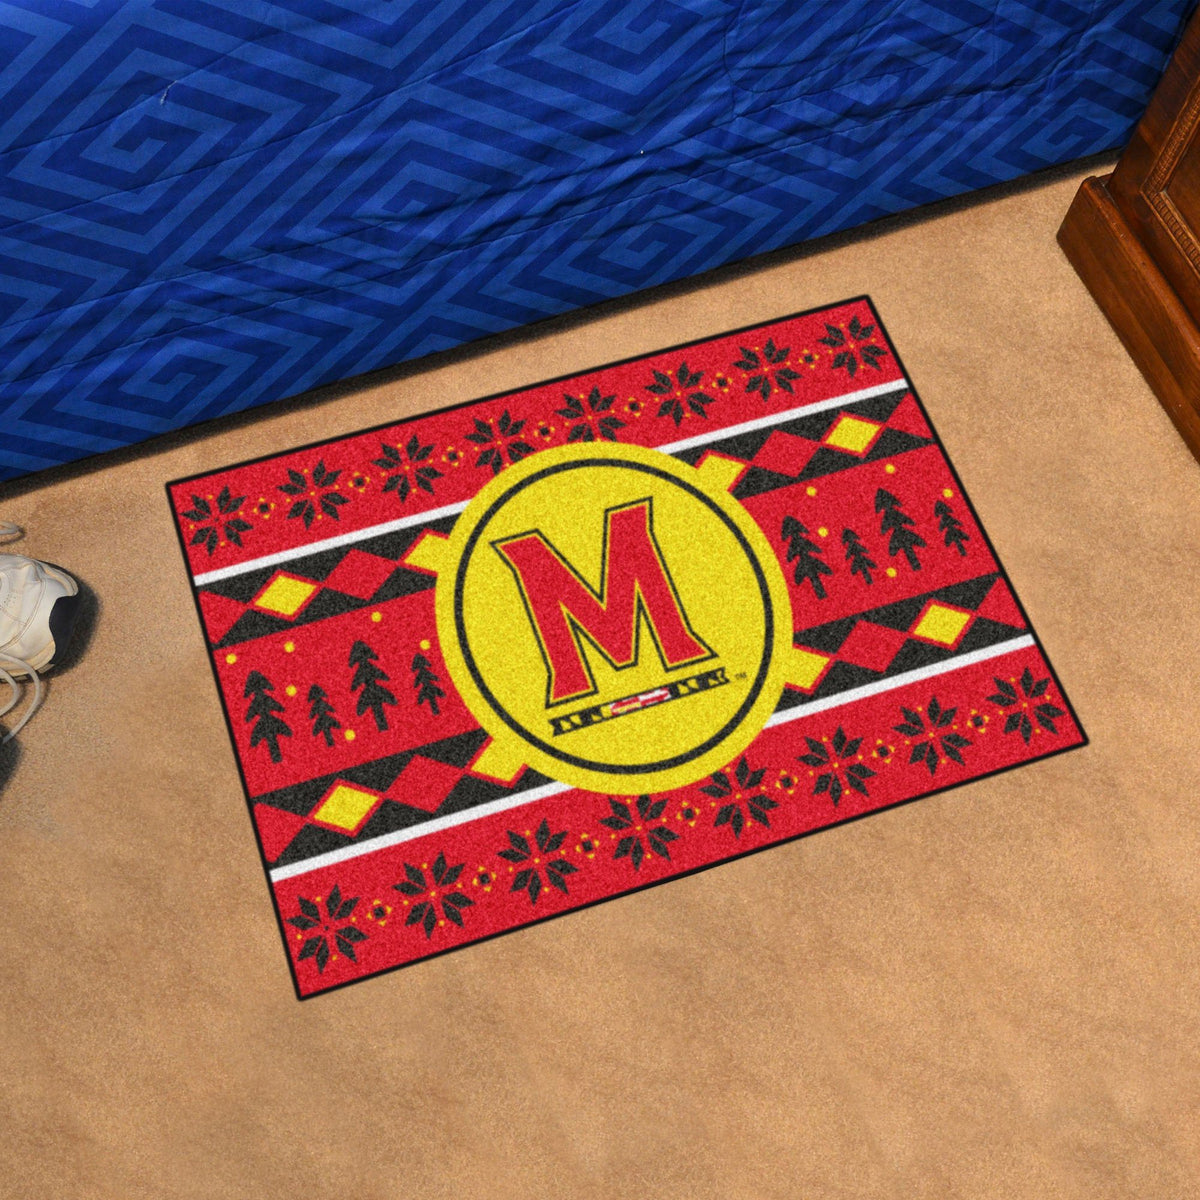 Collegiate - Holiday Sweater Starter Mat Collegiate Mats, Rectangular Mats, Holiday Sweater Starter Mat, Collegiate, Home Fan Mats Maryland